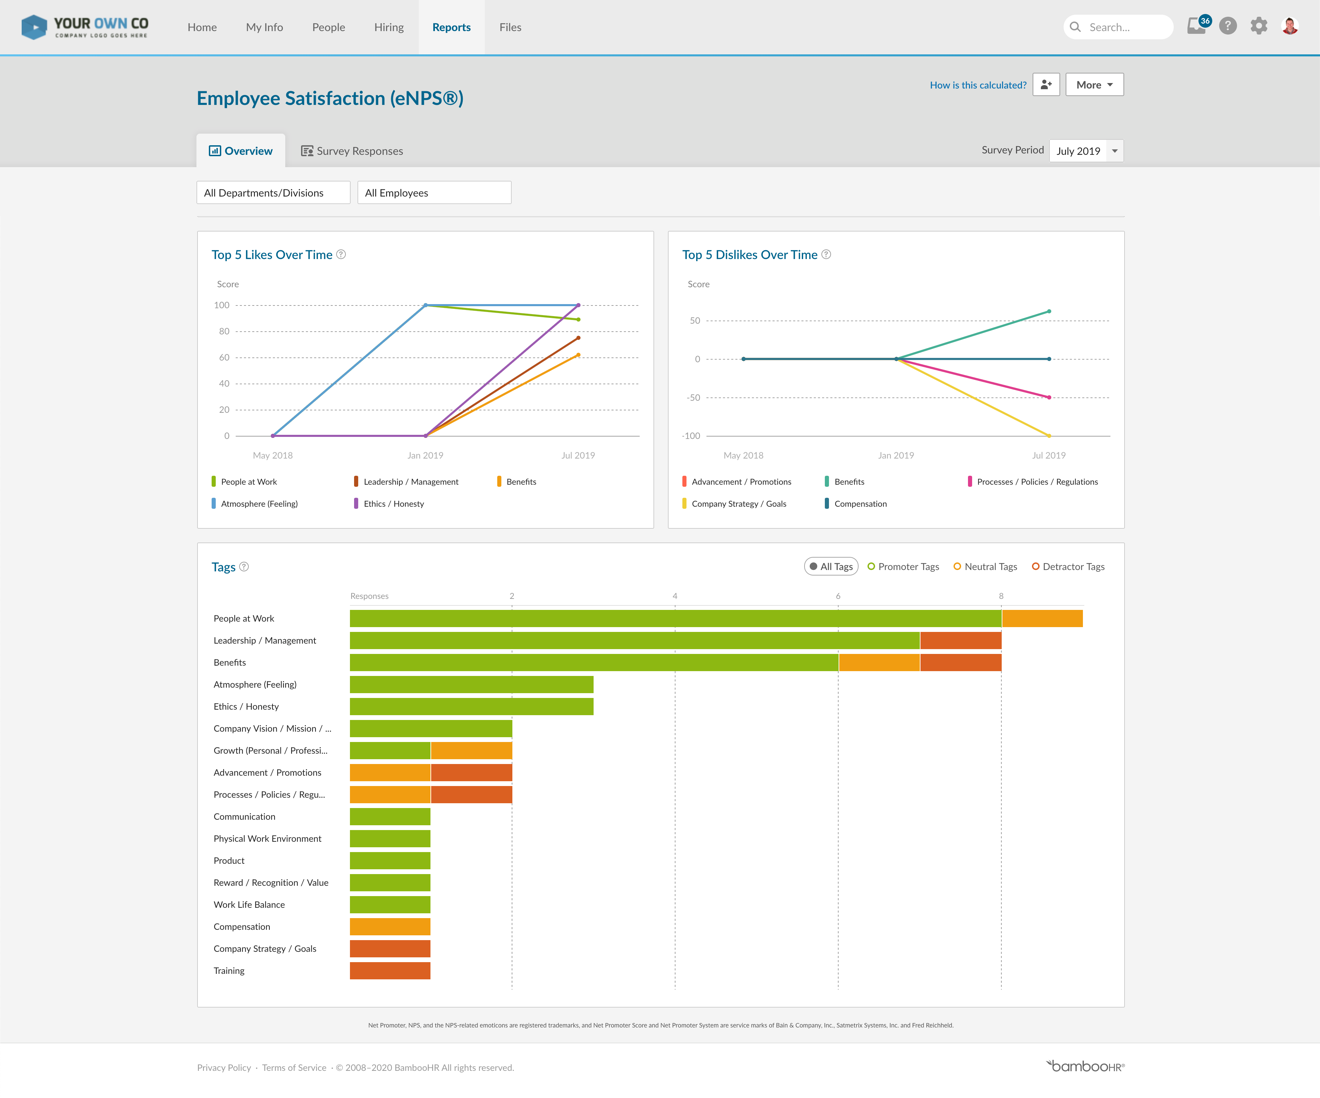 BambooHR Software - Employee Satisfaction Report with eNPS